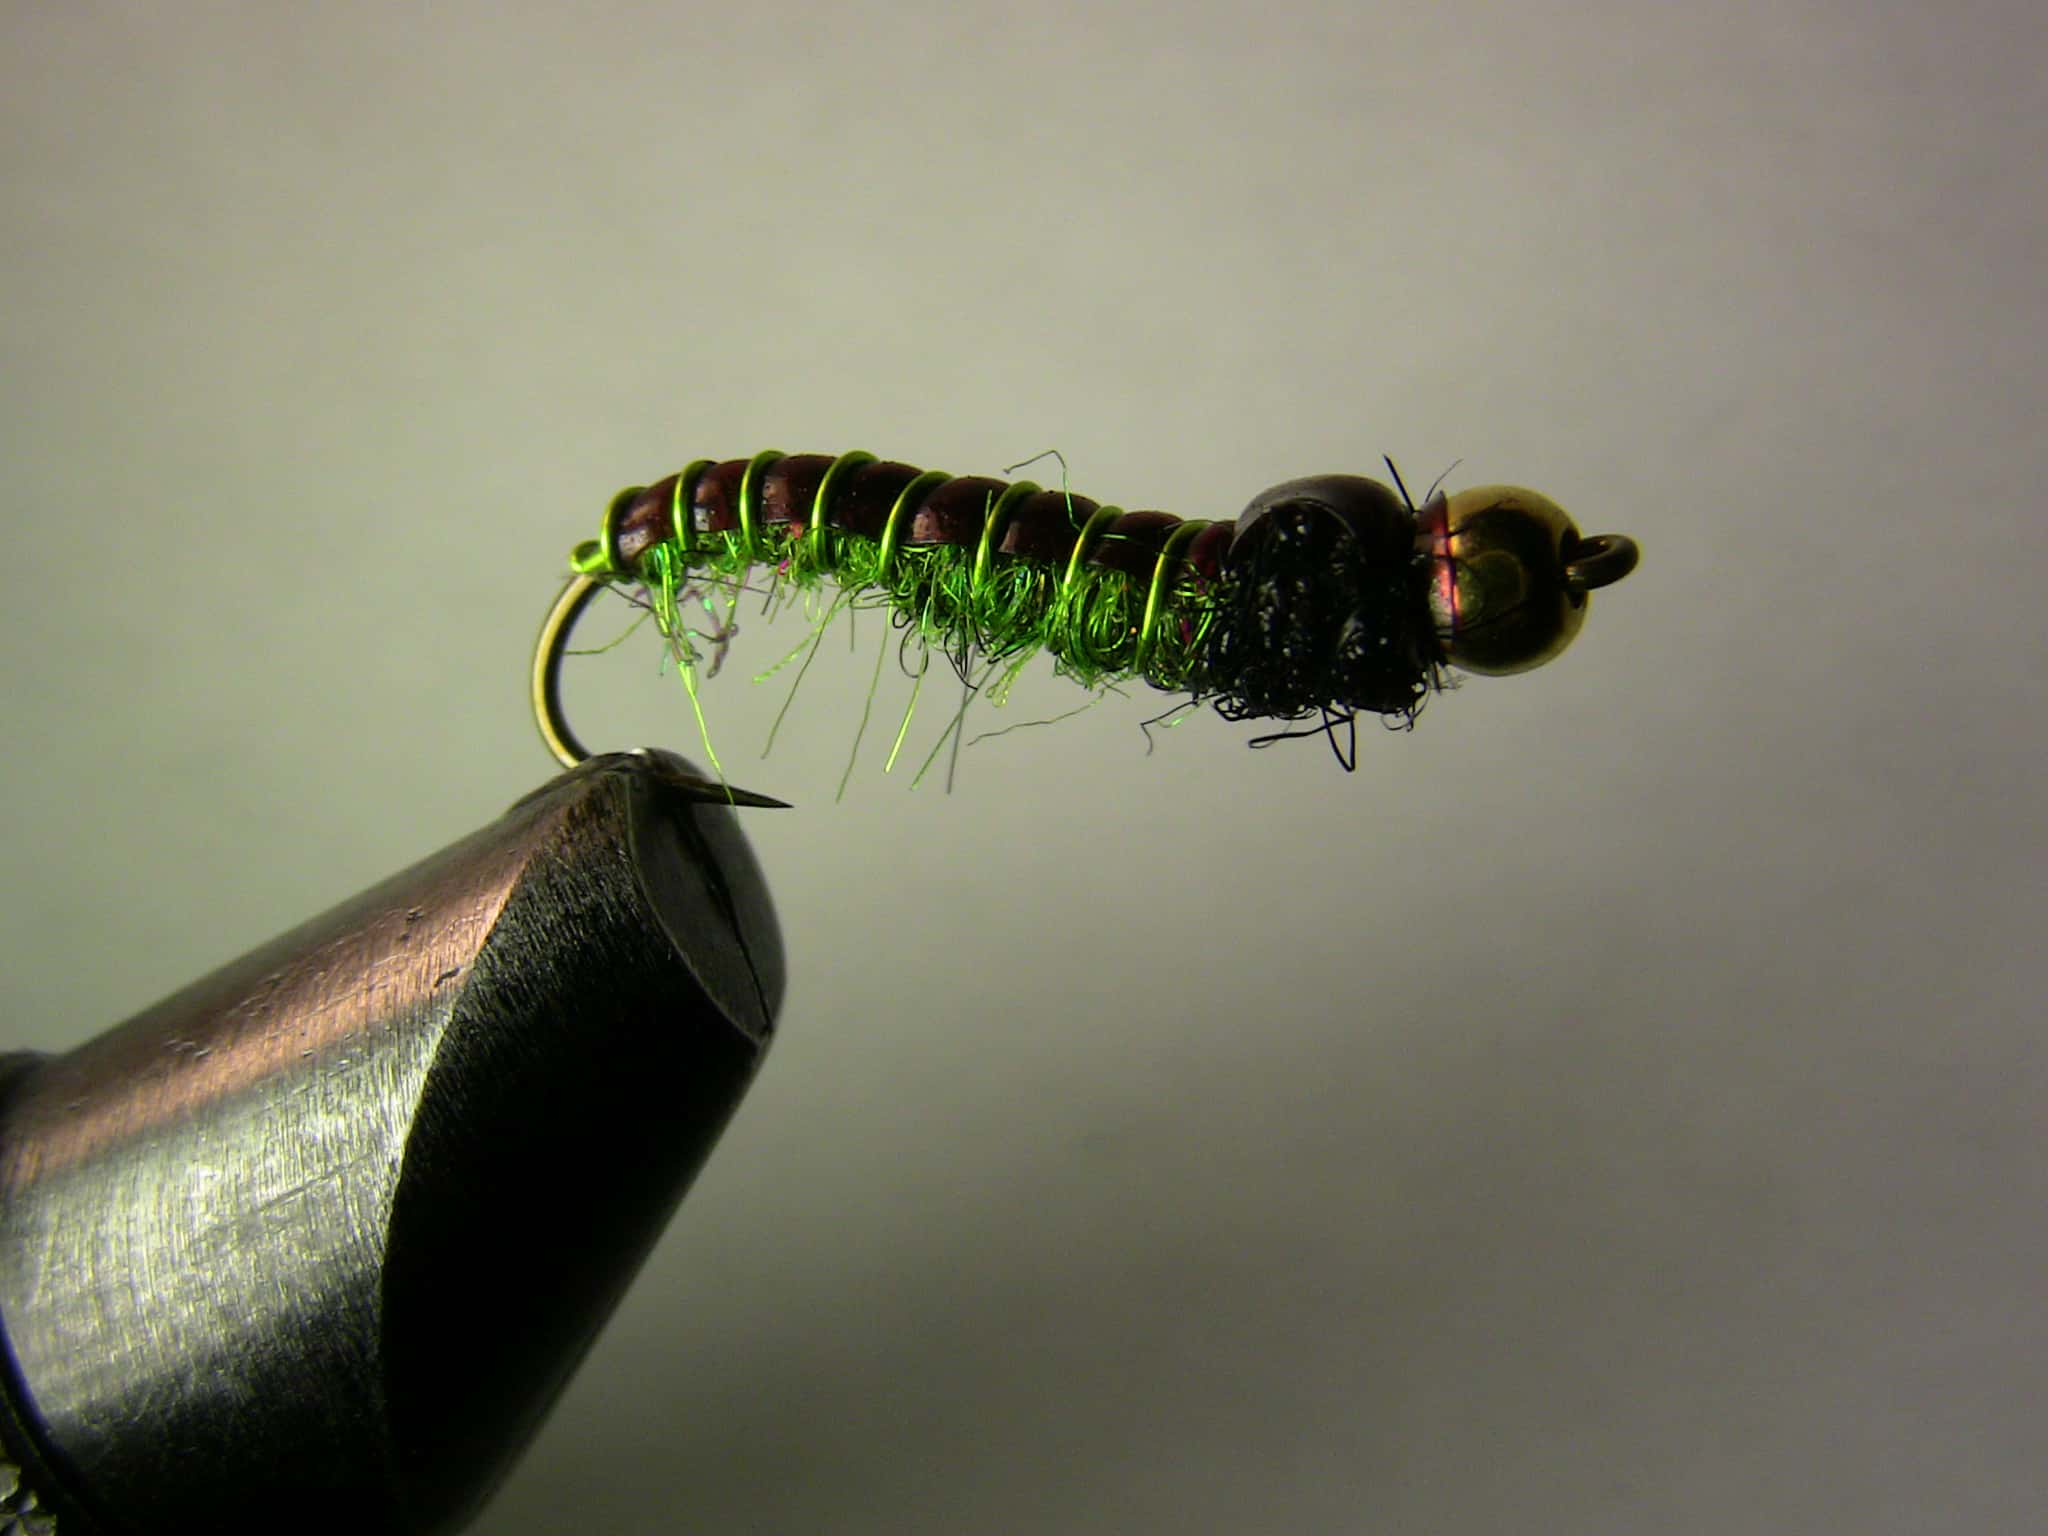 One of my favorite Green caddis larva patterns